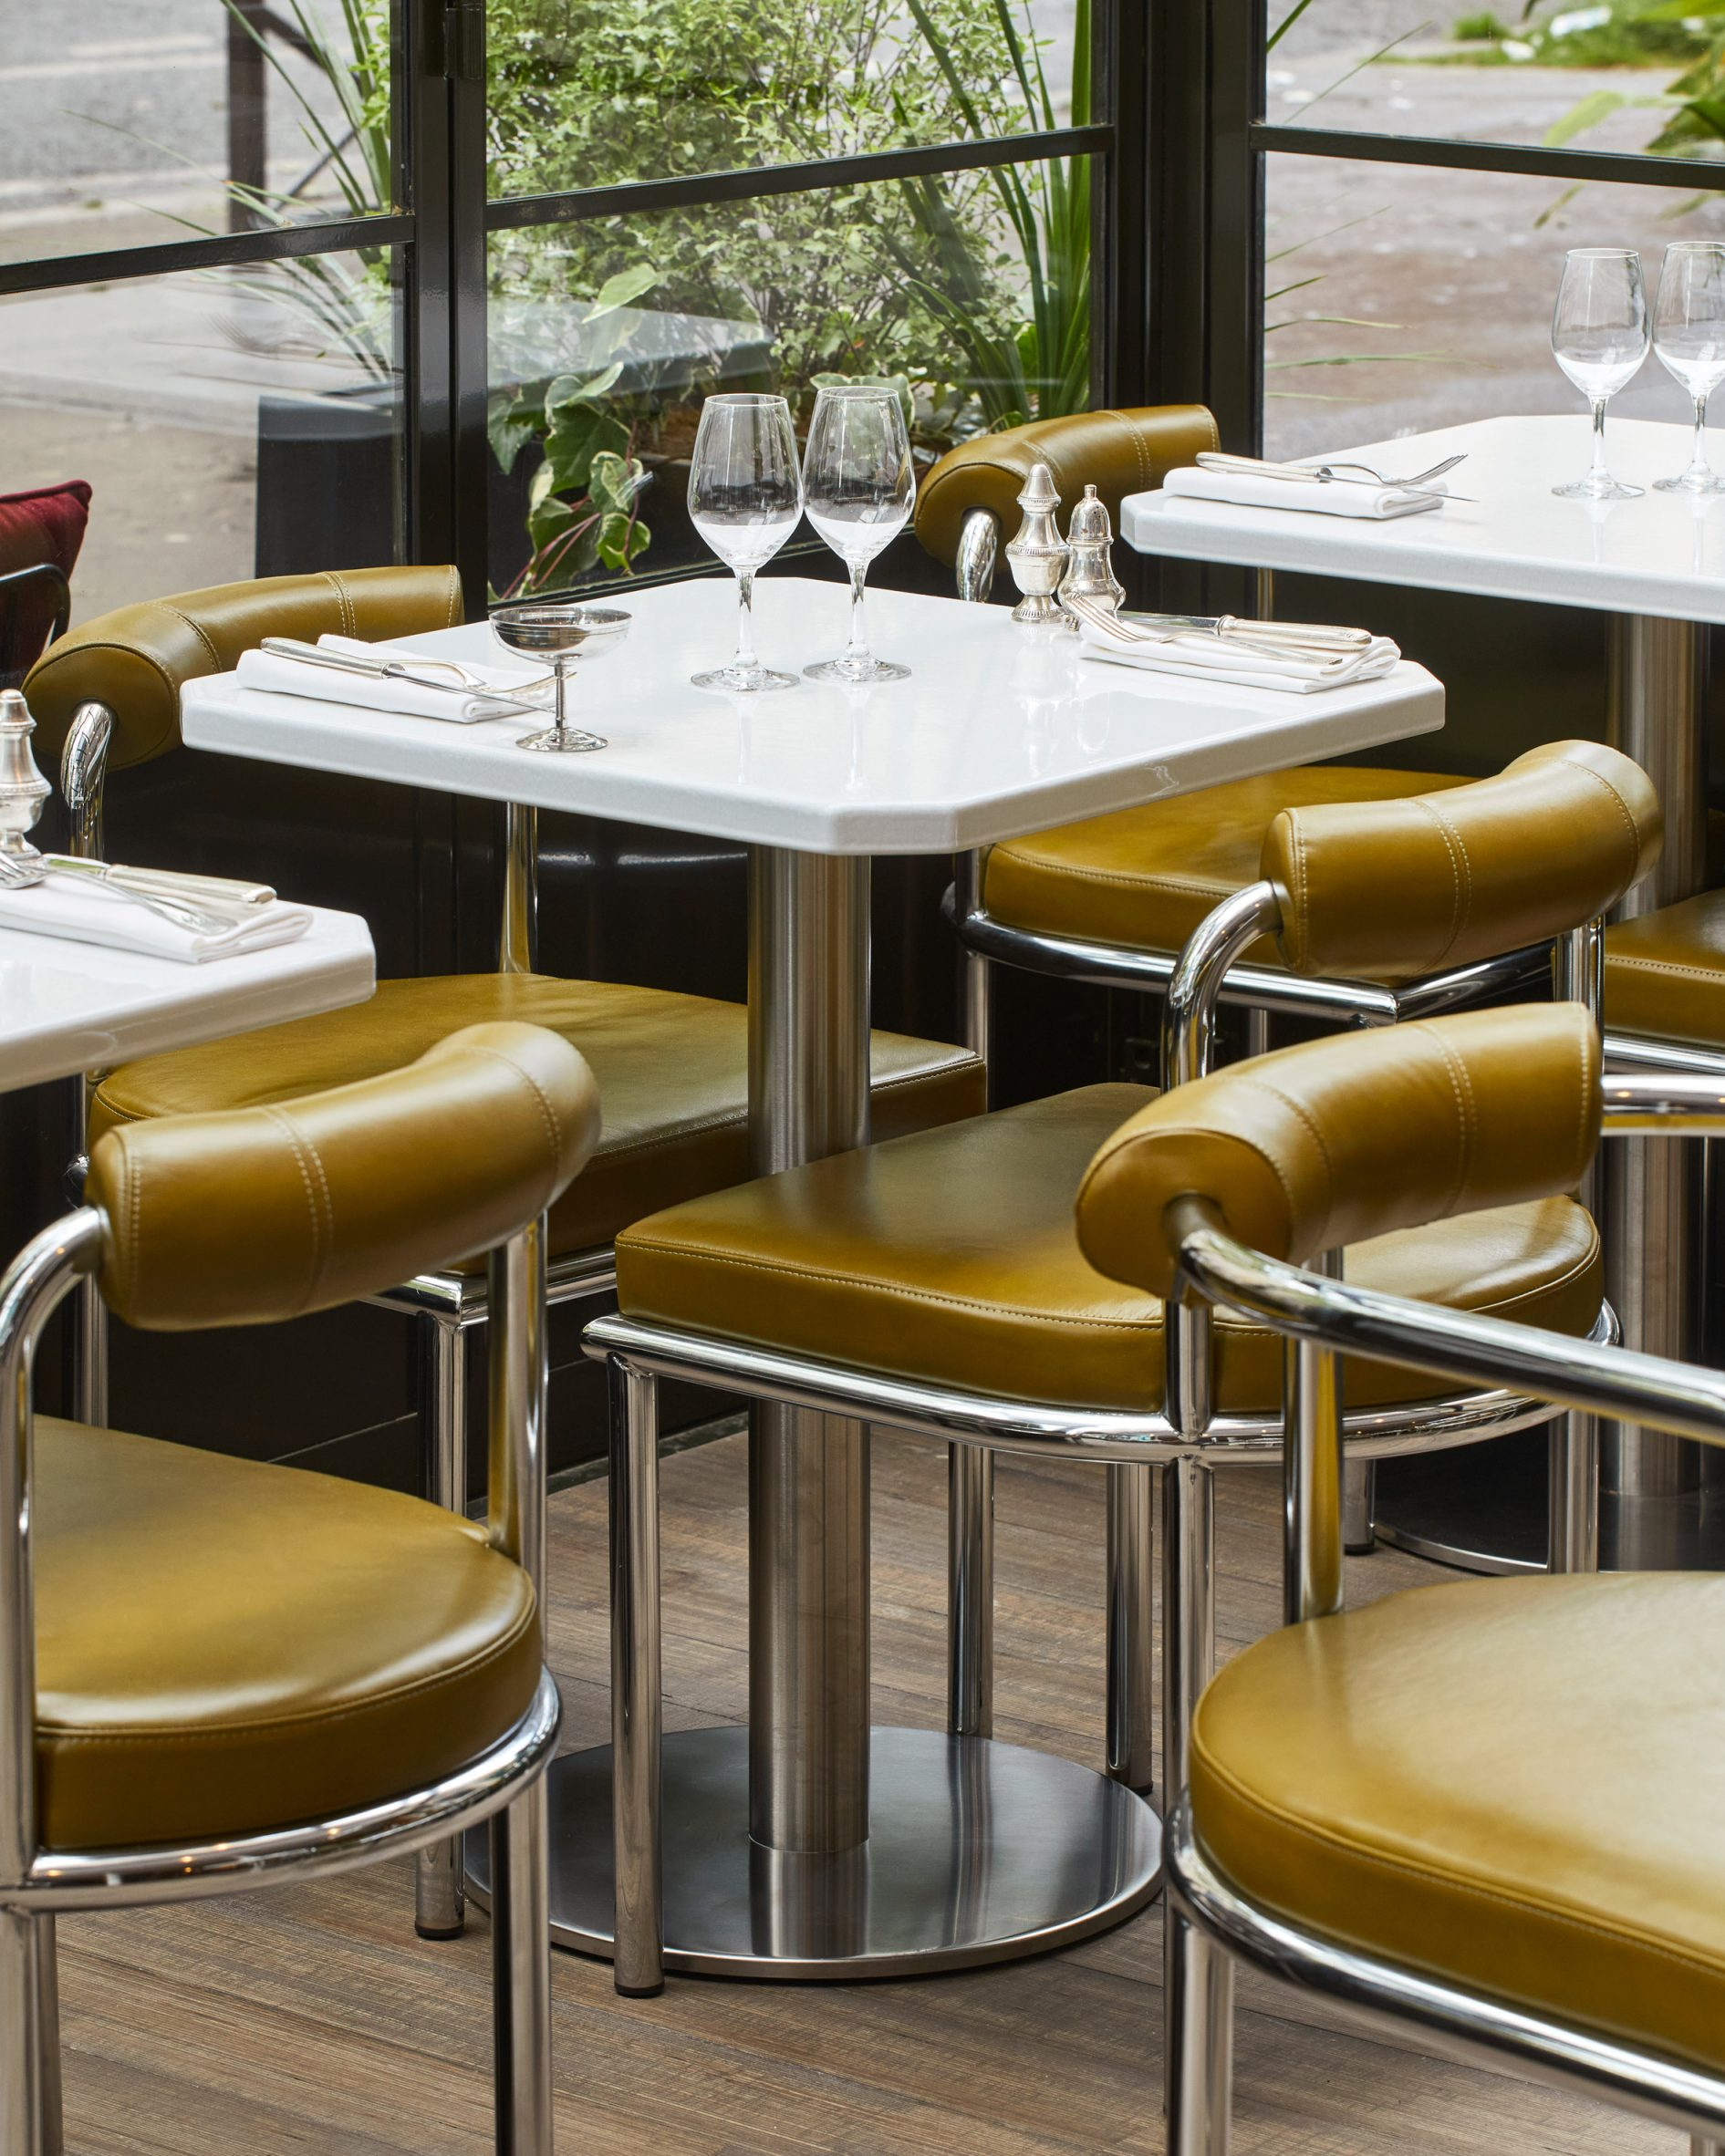 Tubular steel and green leather chairs in Abstinence restaurant interior